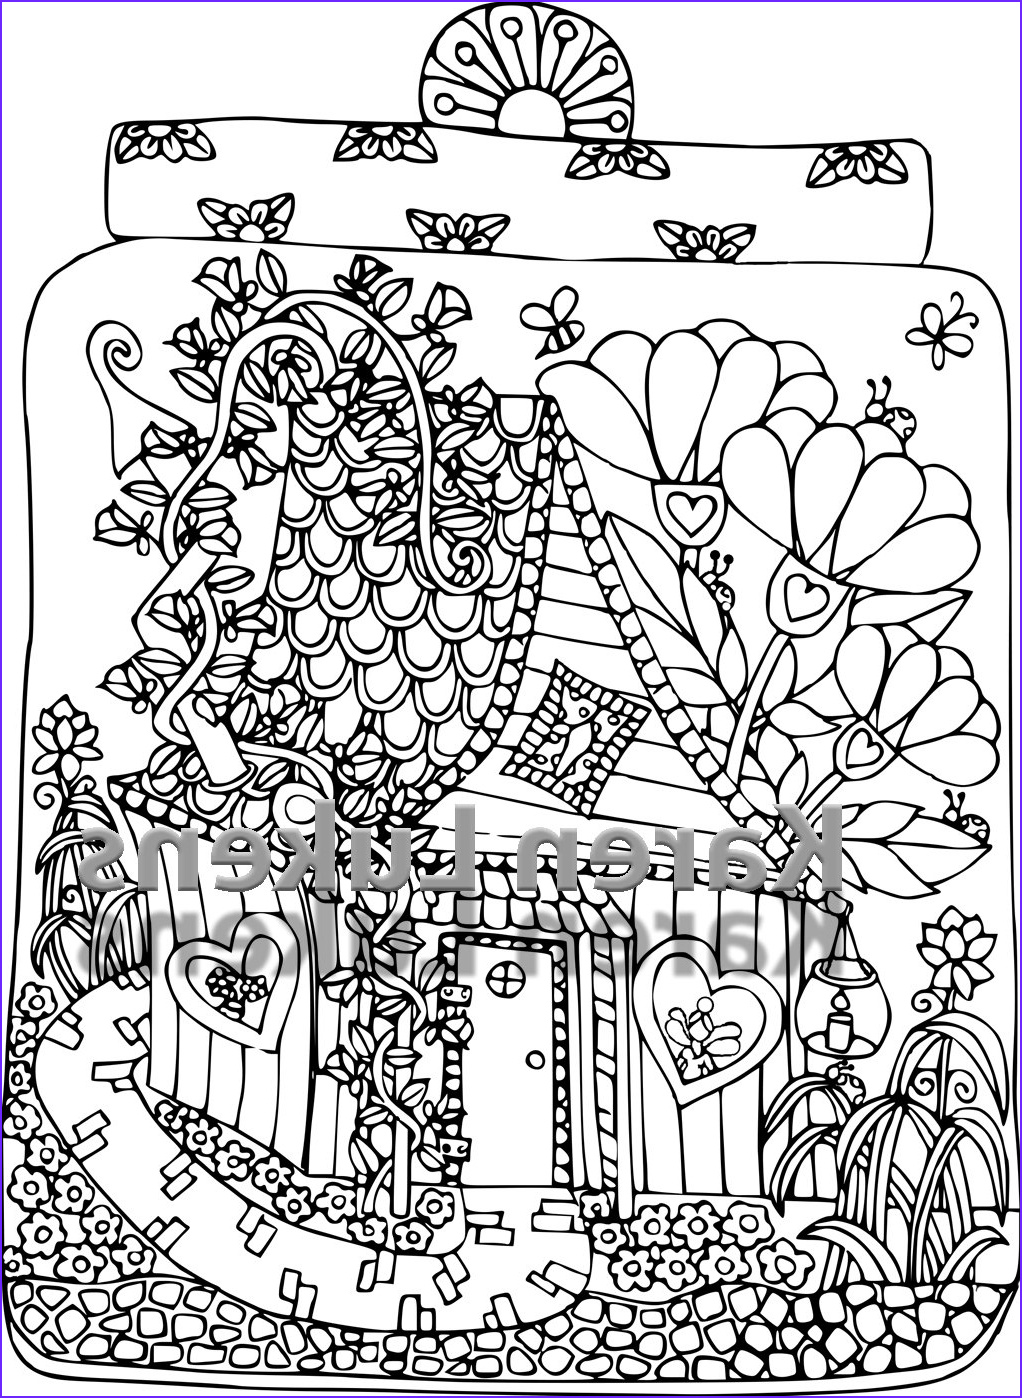 fairy house 3 1 adult coloring book page